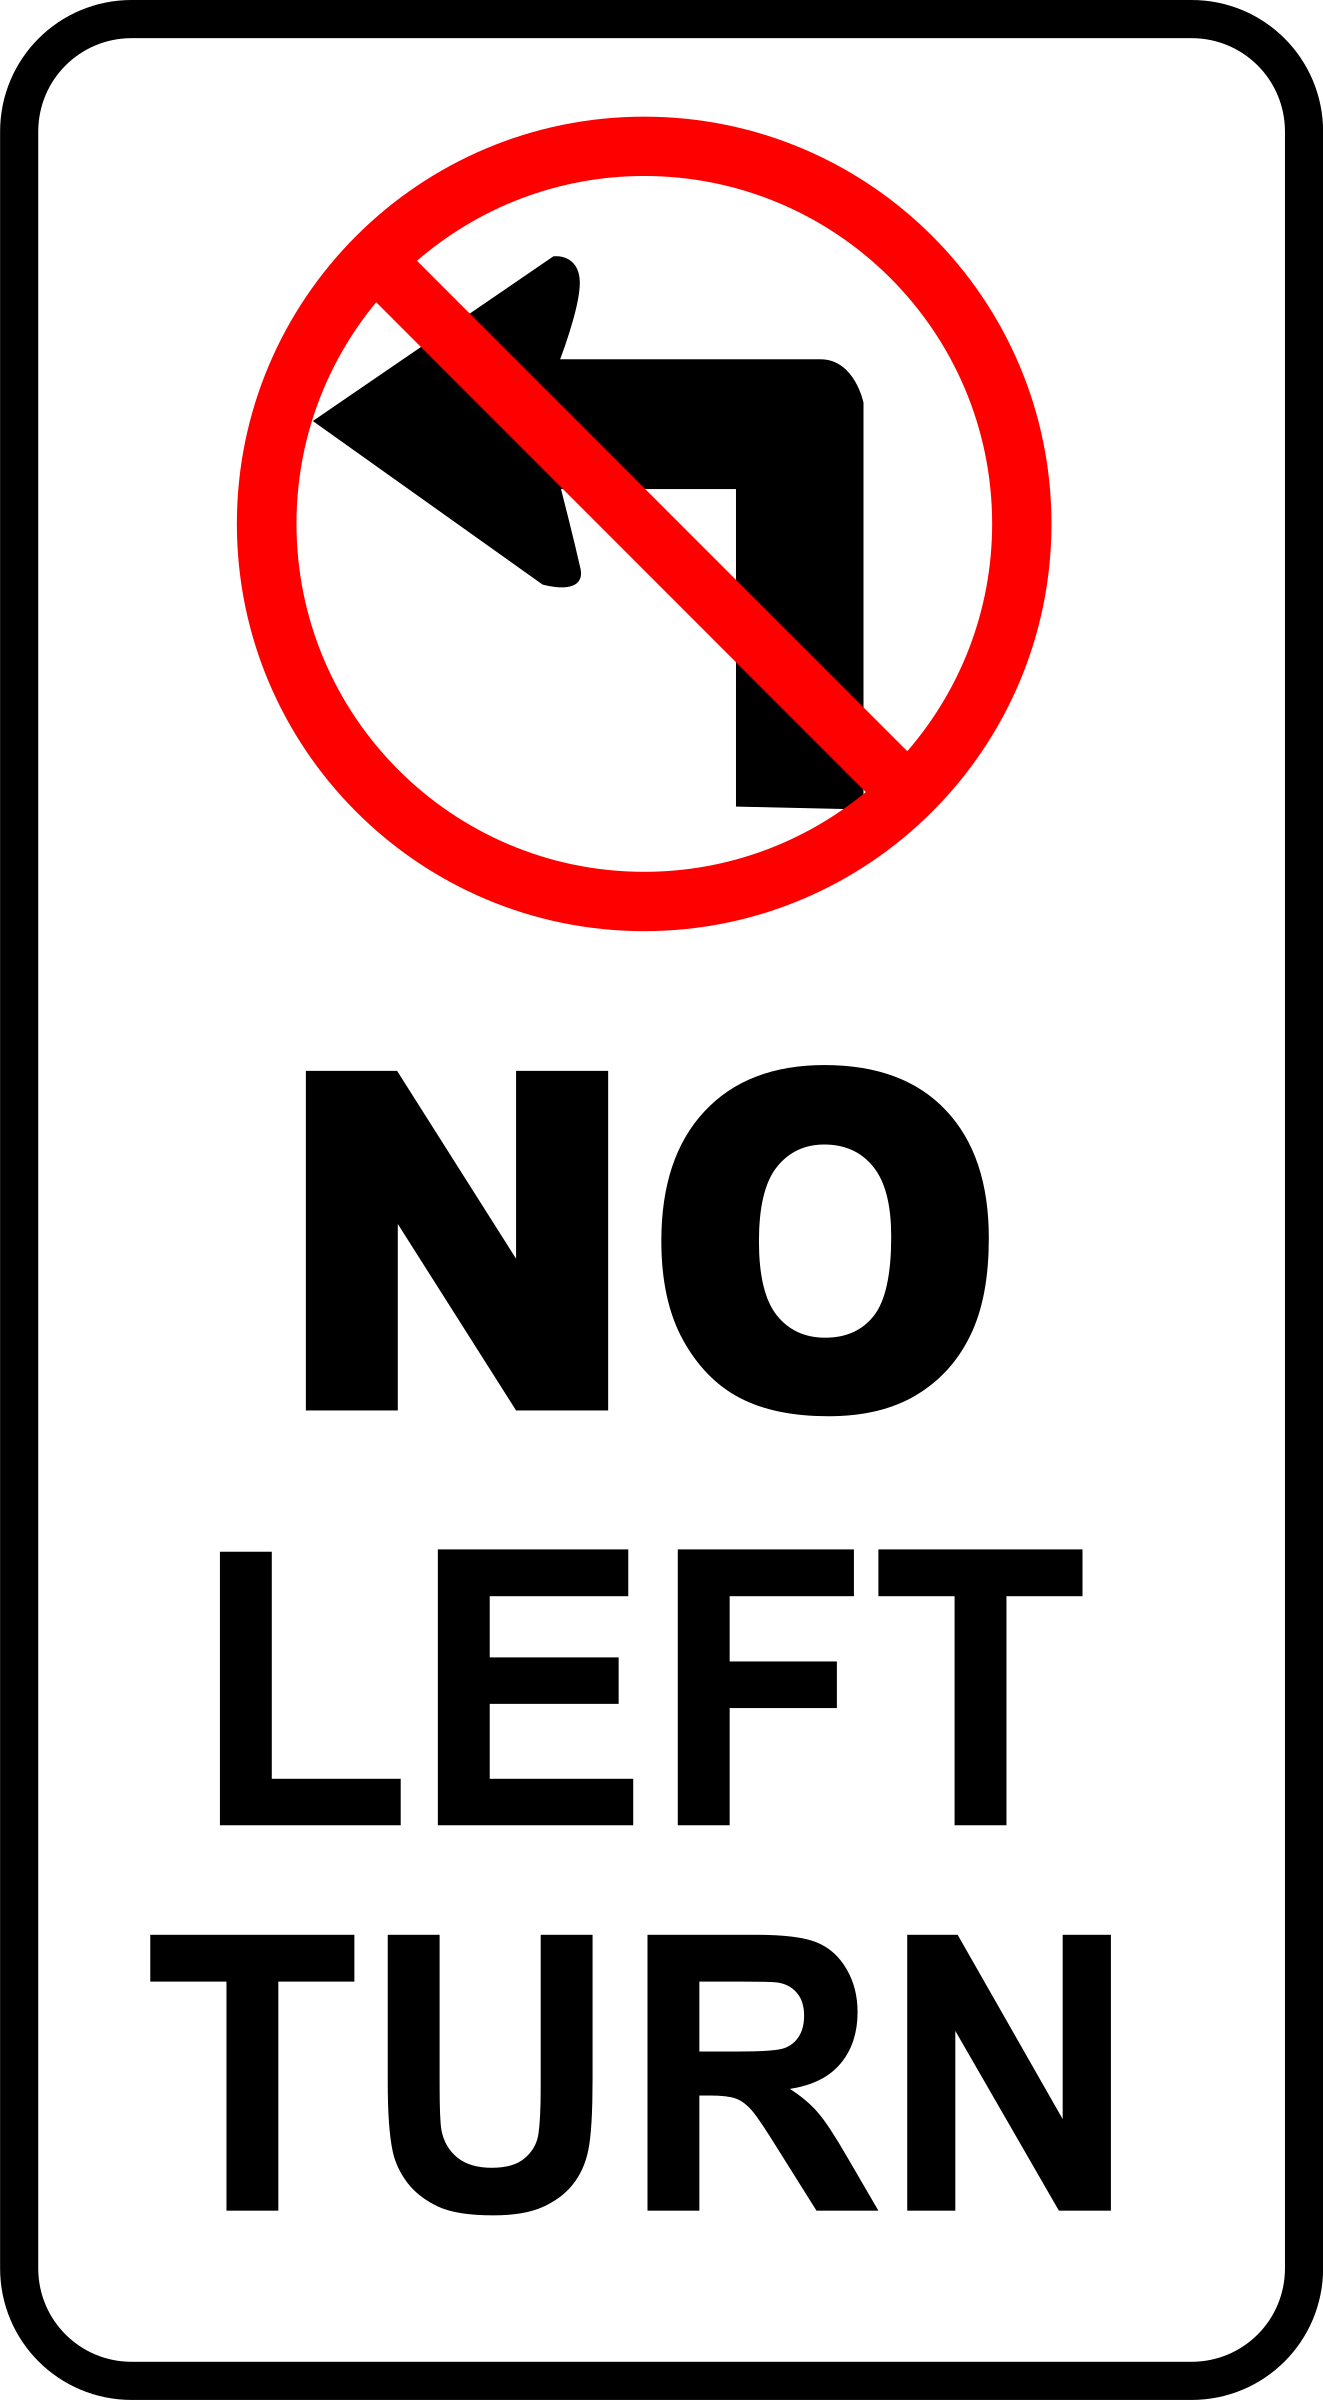 Clipart - sign-no left turn